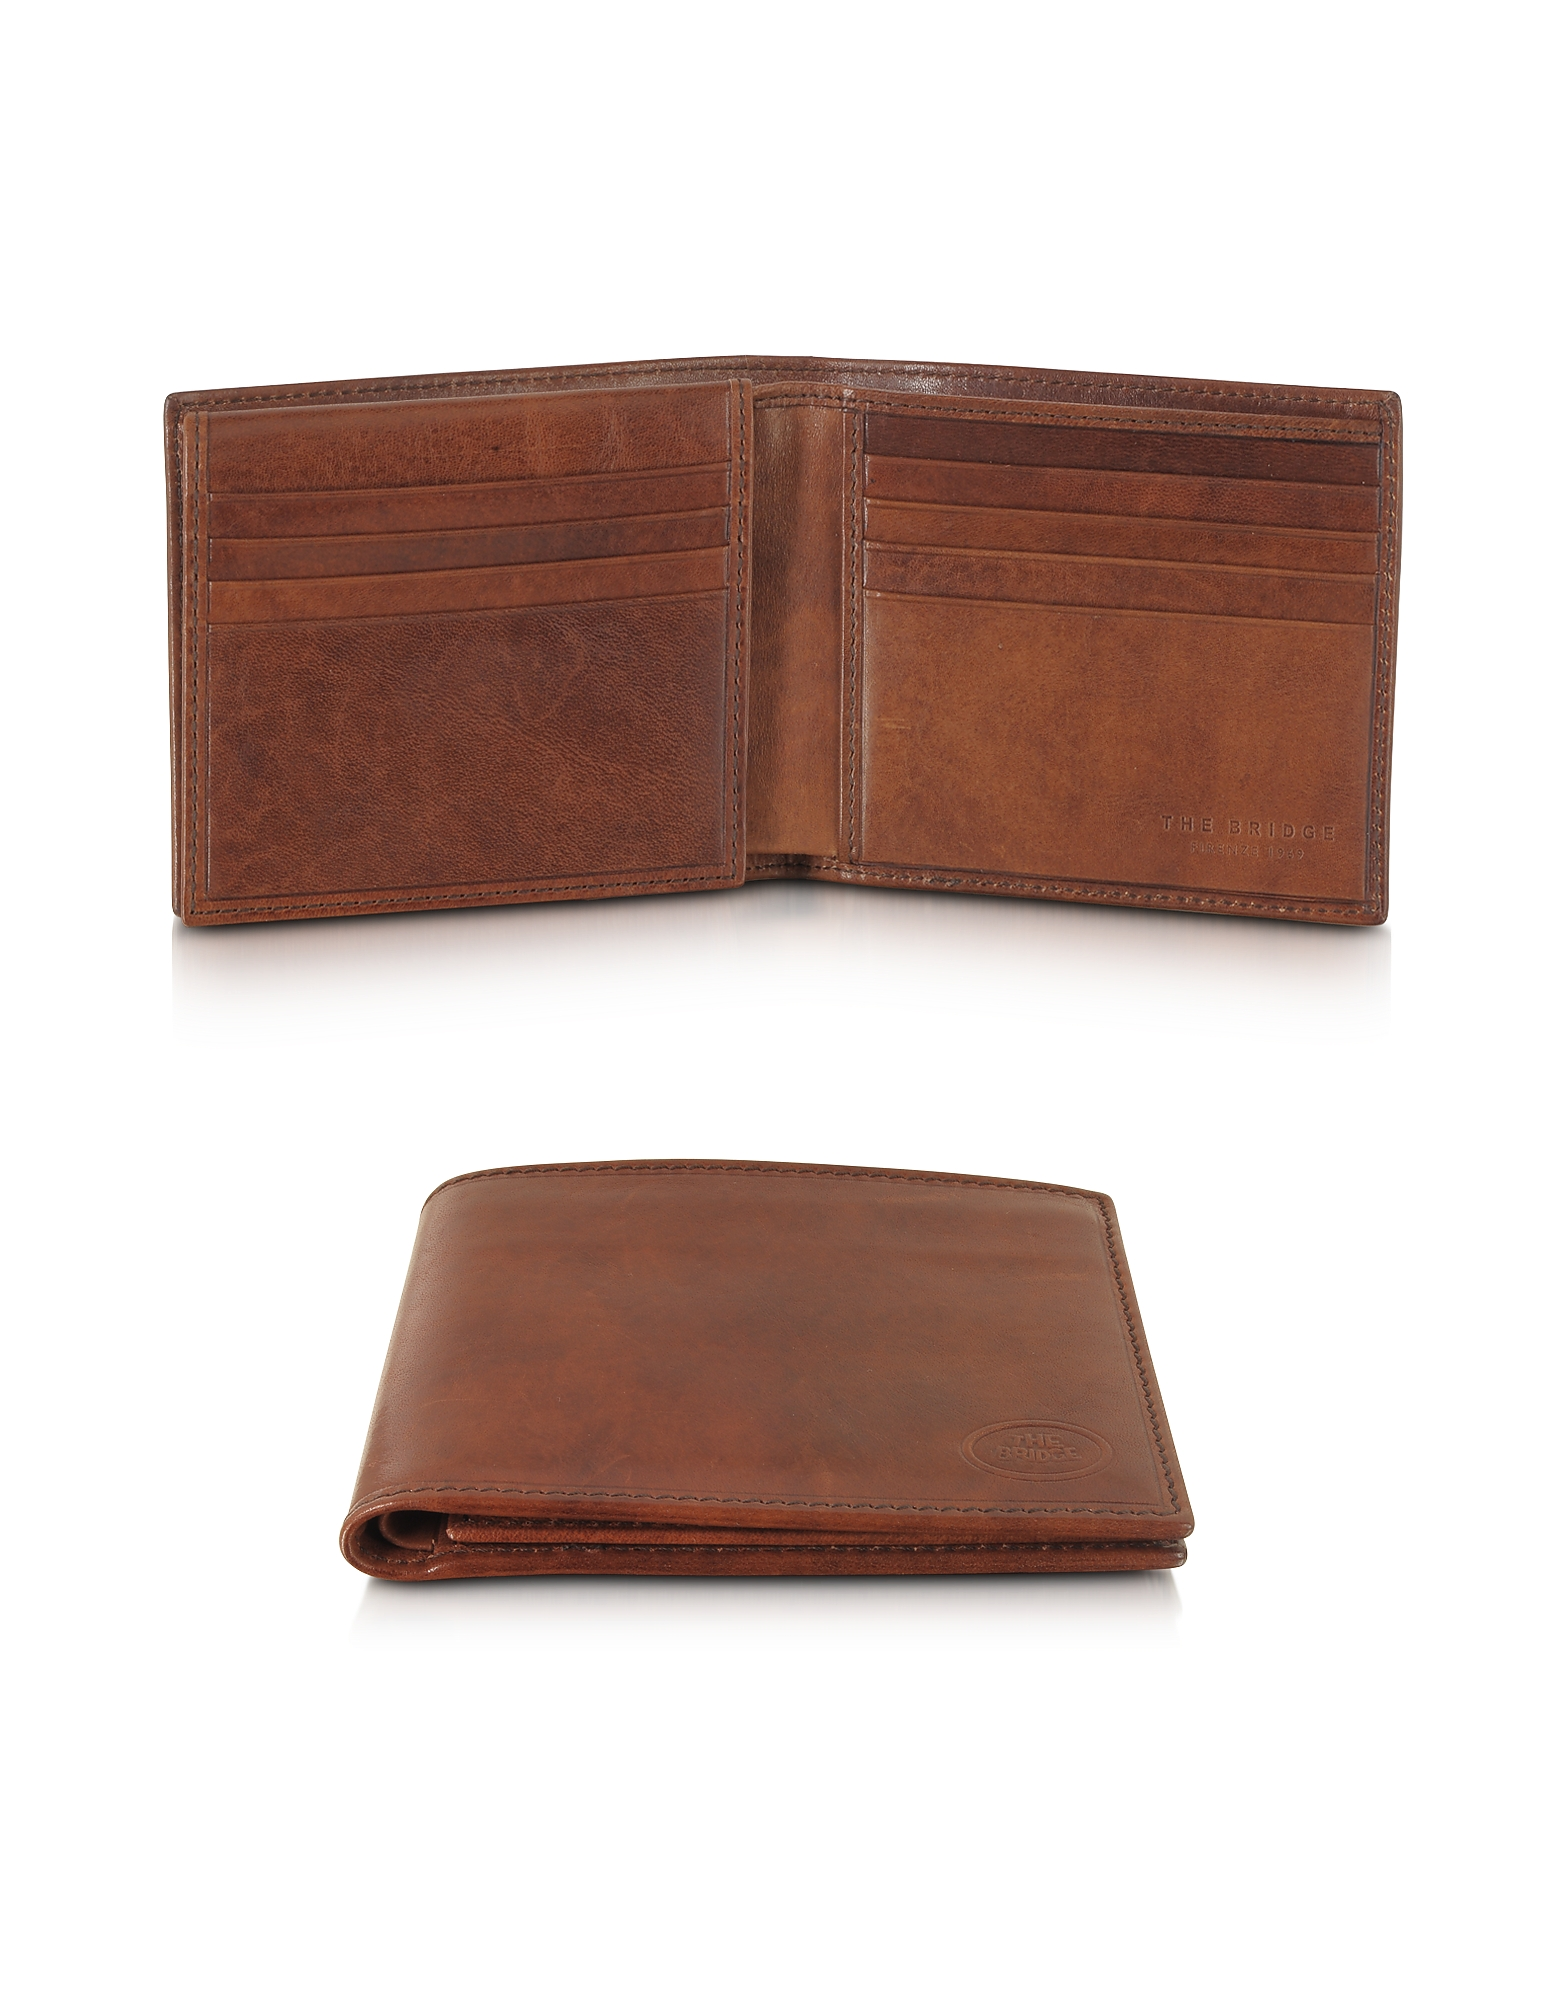 The Bridge Wallets, Story Uomo Leather Men's Billfold Wallet